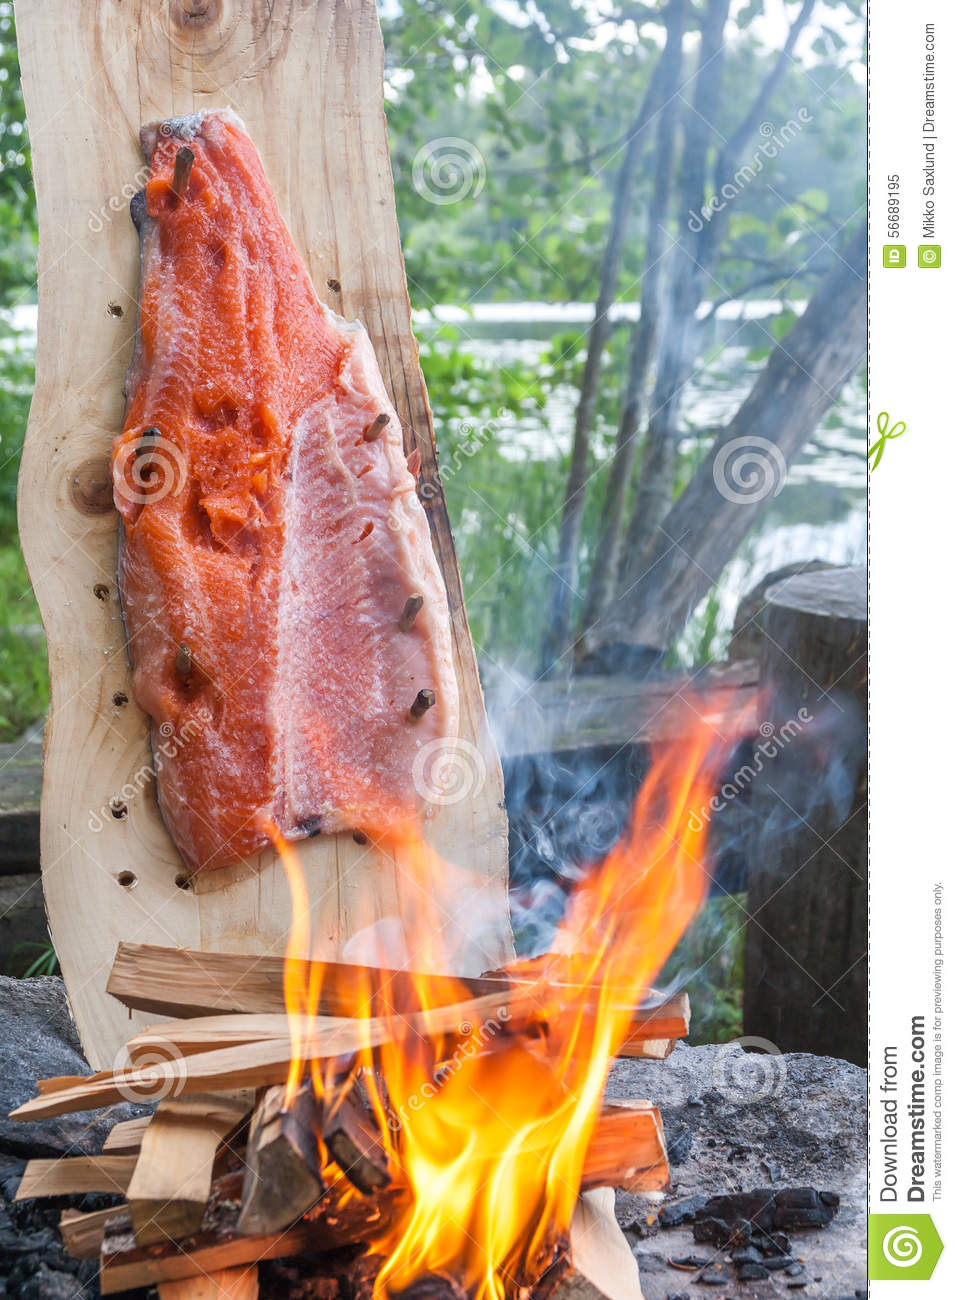 Cooking Fish With A Fire